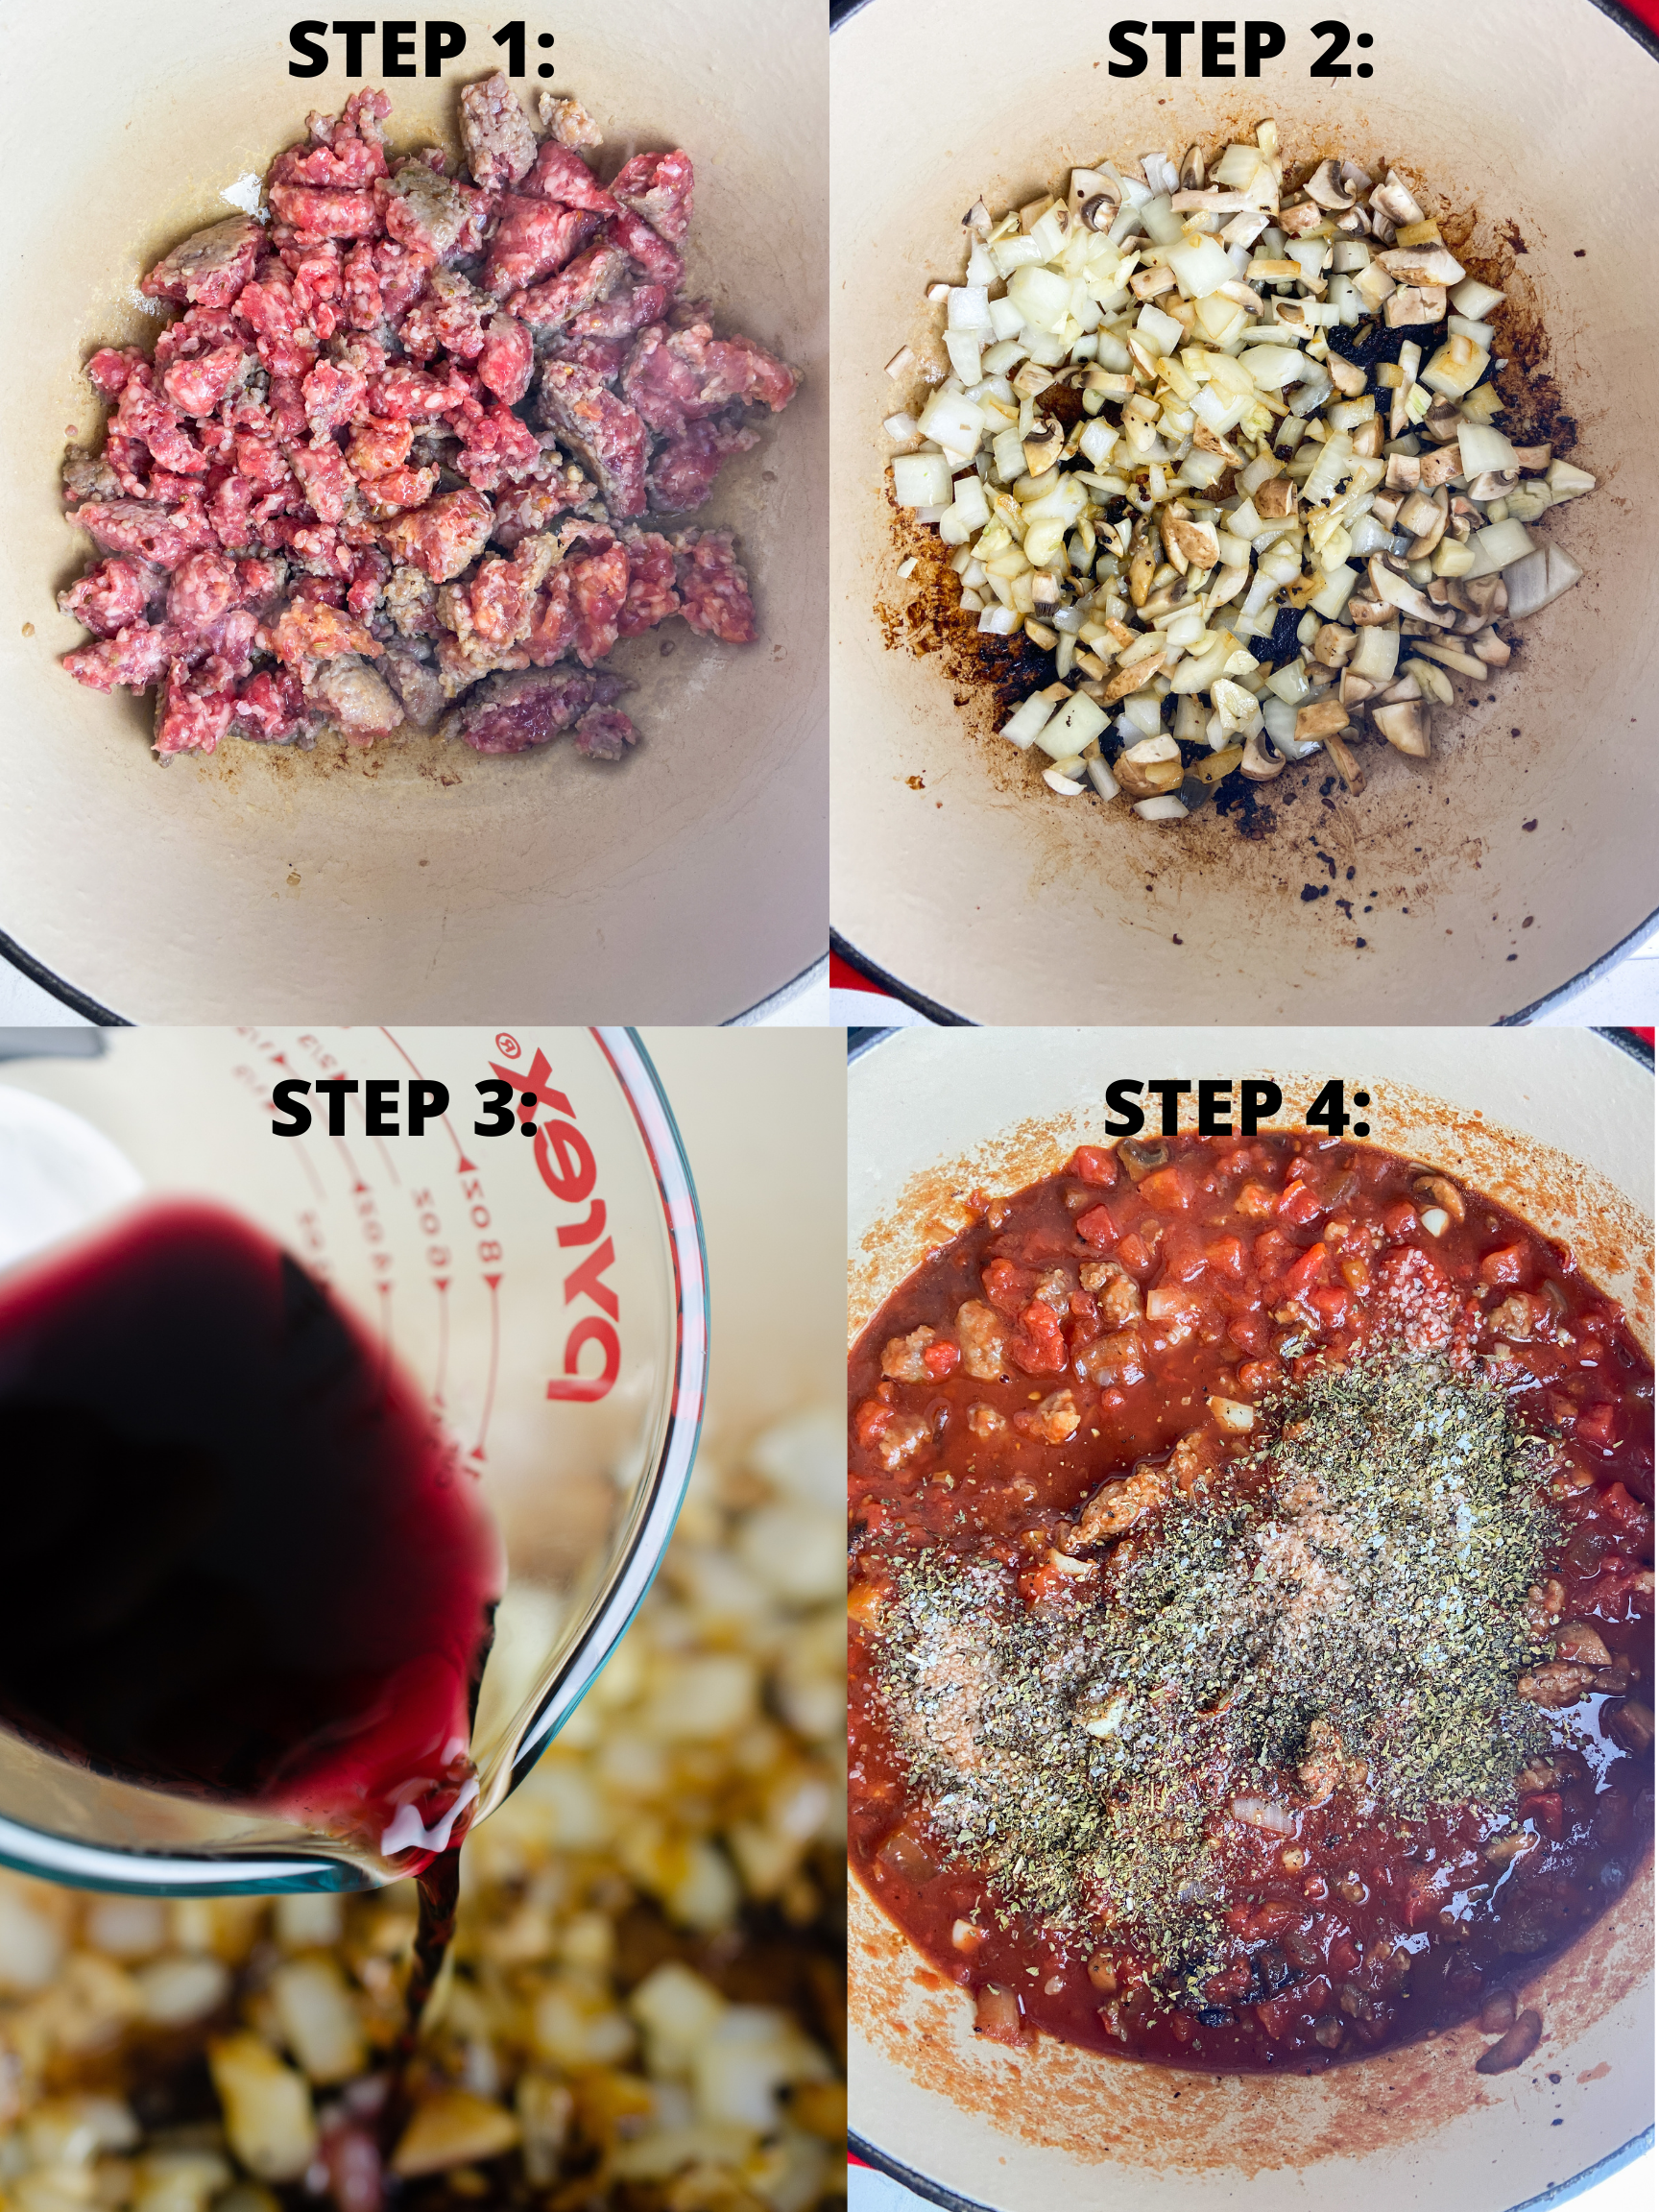 Step by step photos showing how to make meat sauce.